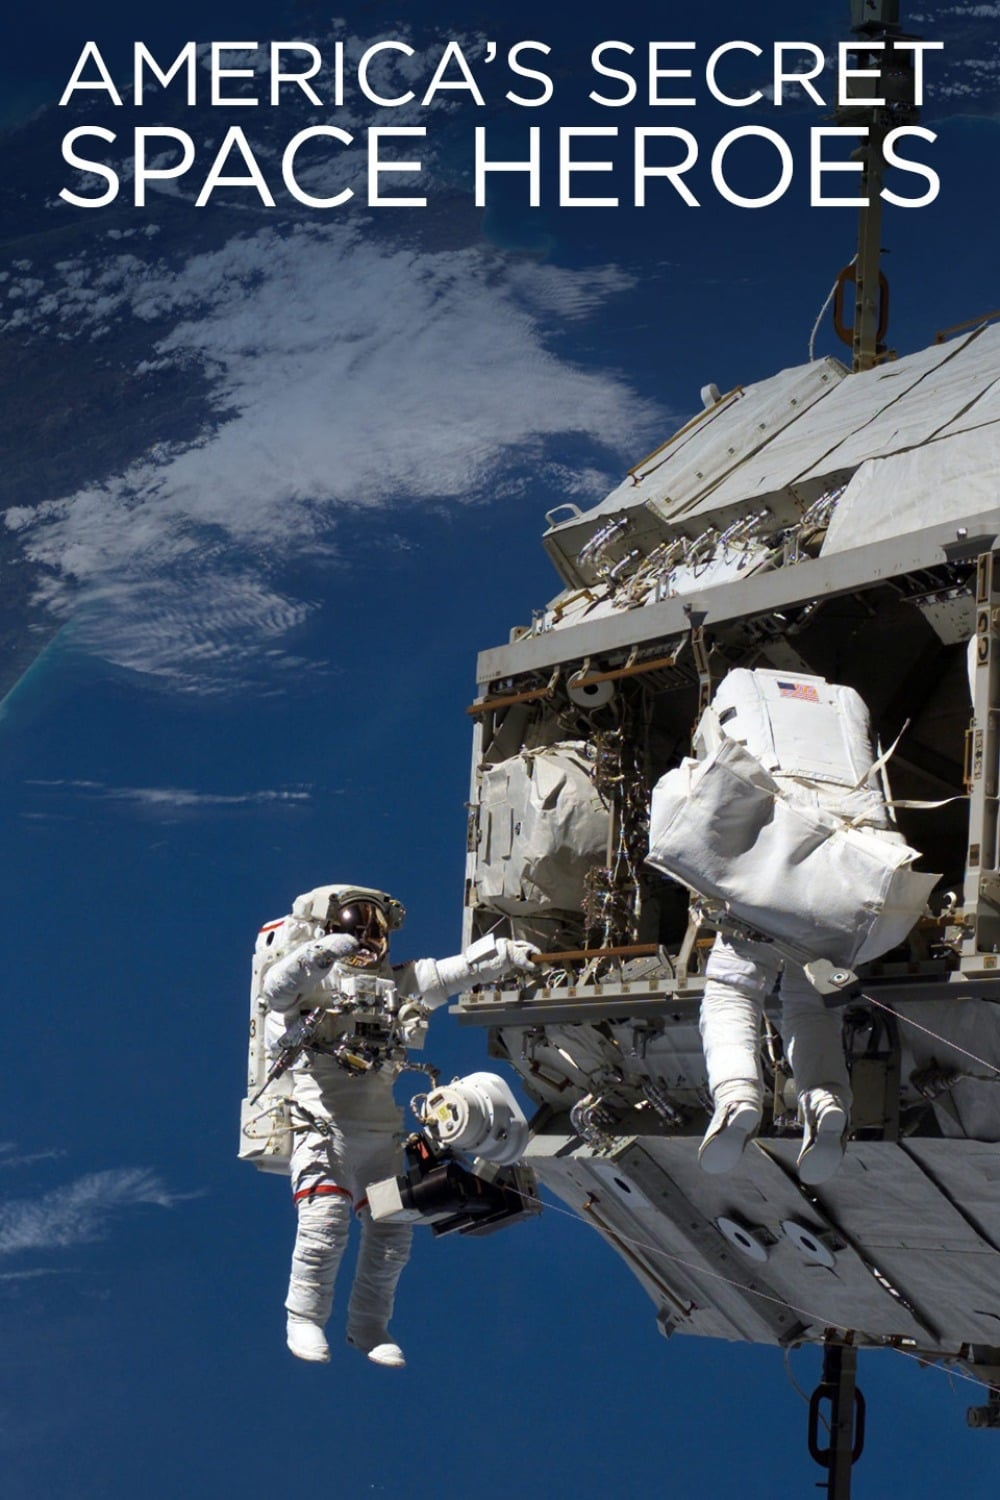 America's Secret Space Heroes TV Shows About Exploration